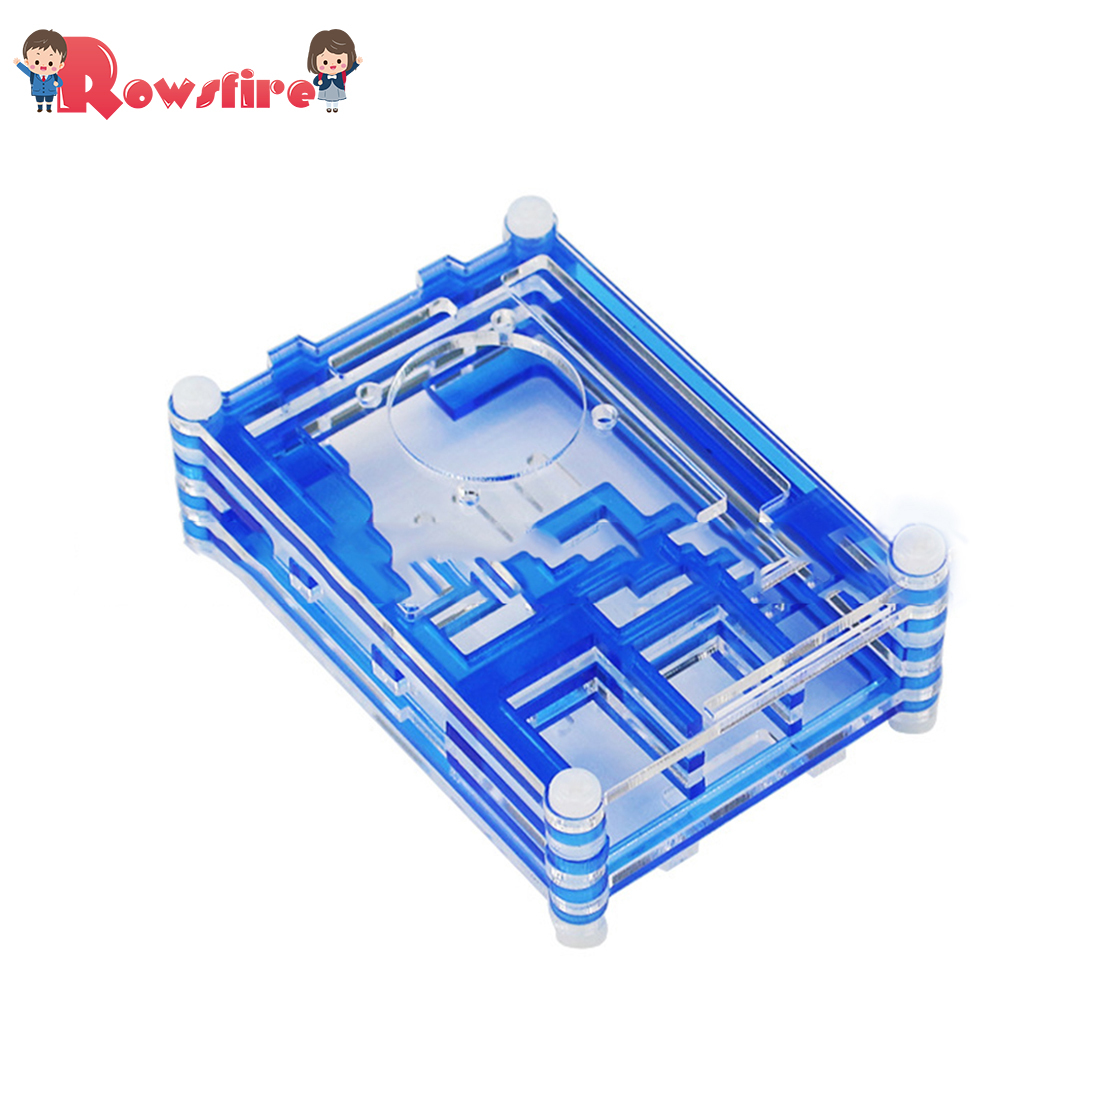 9 Layers Acrylic Shell Protective Cover With Fan For Raspberry Pi 3B+/3B/2B - Blue